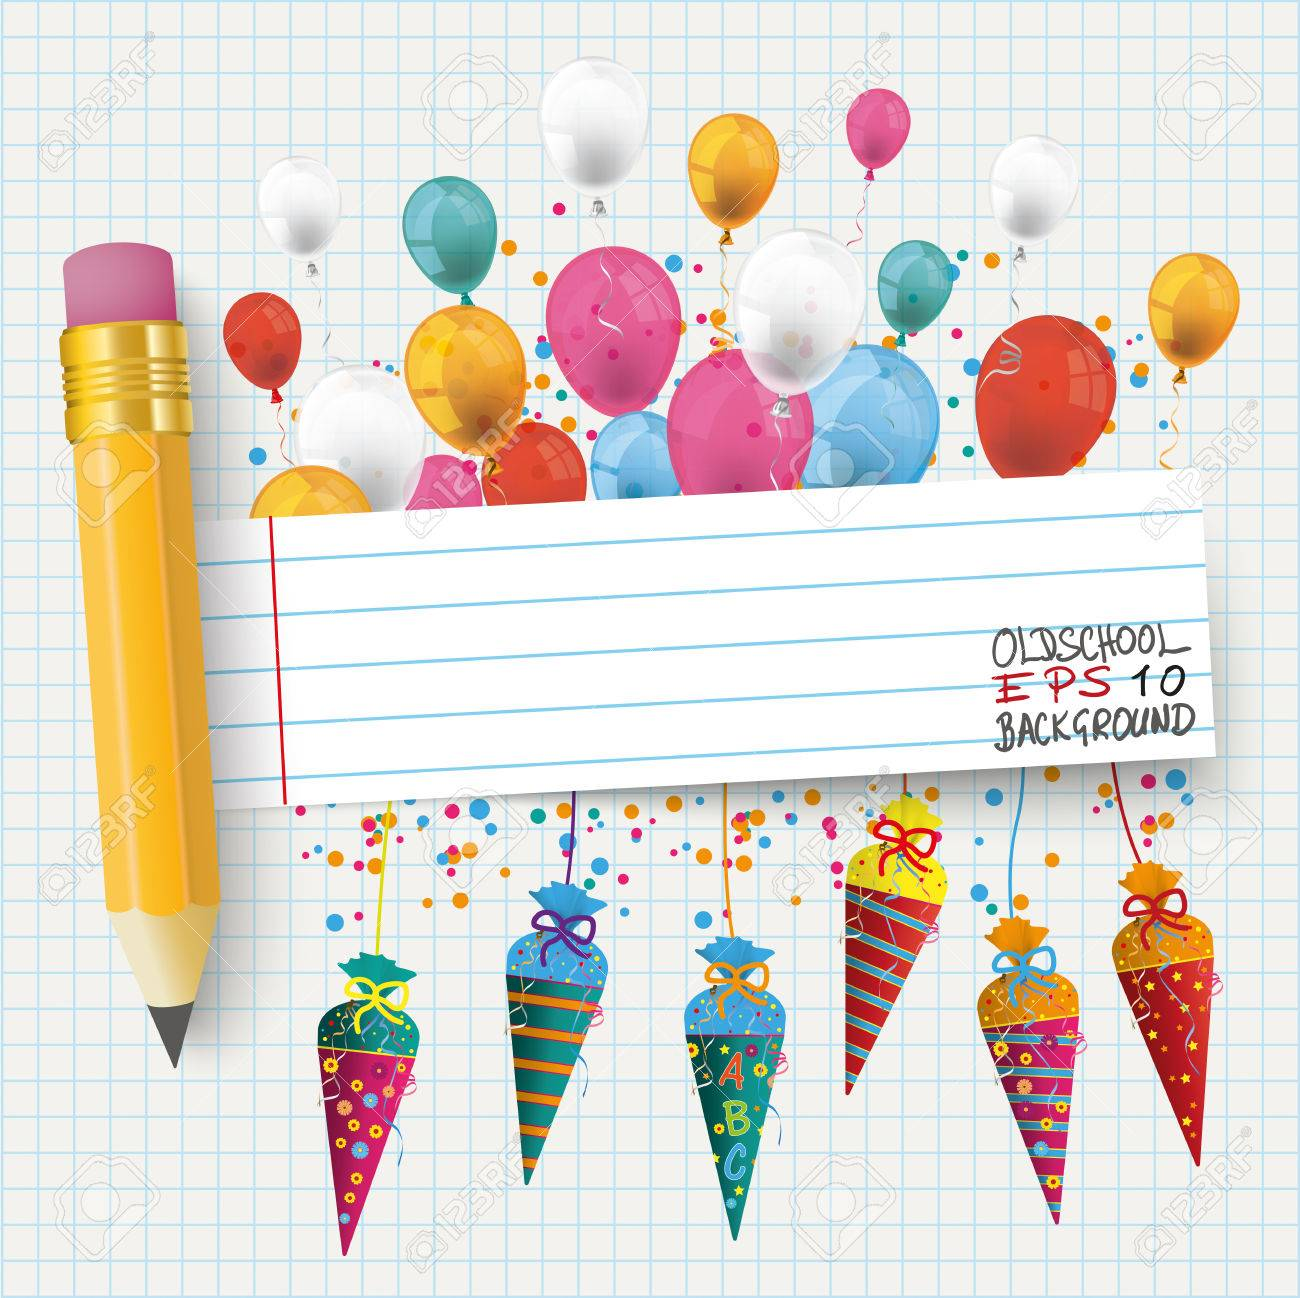 checked school paper with colored balloons candy cones pencil and striped banner eps